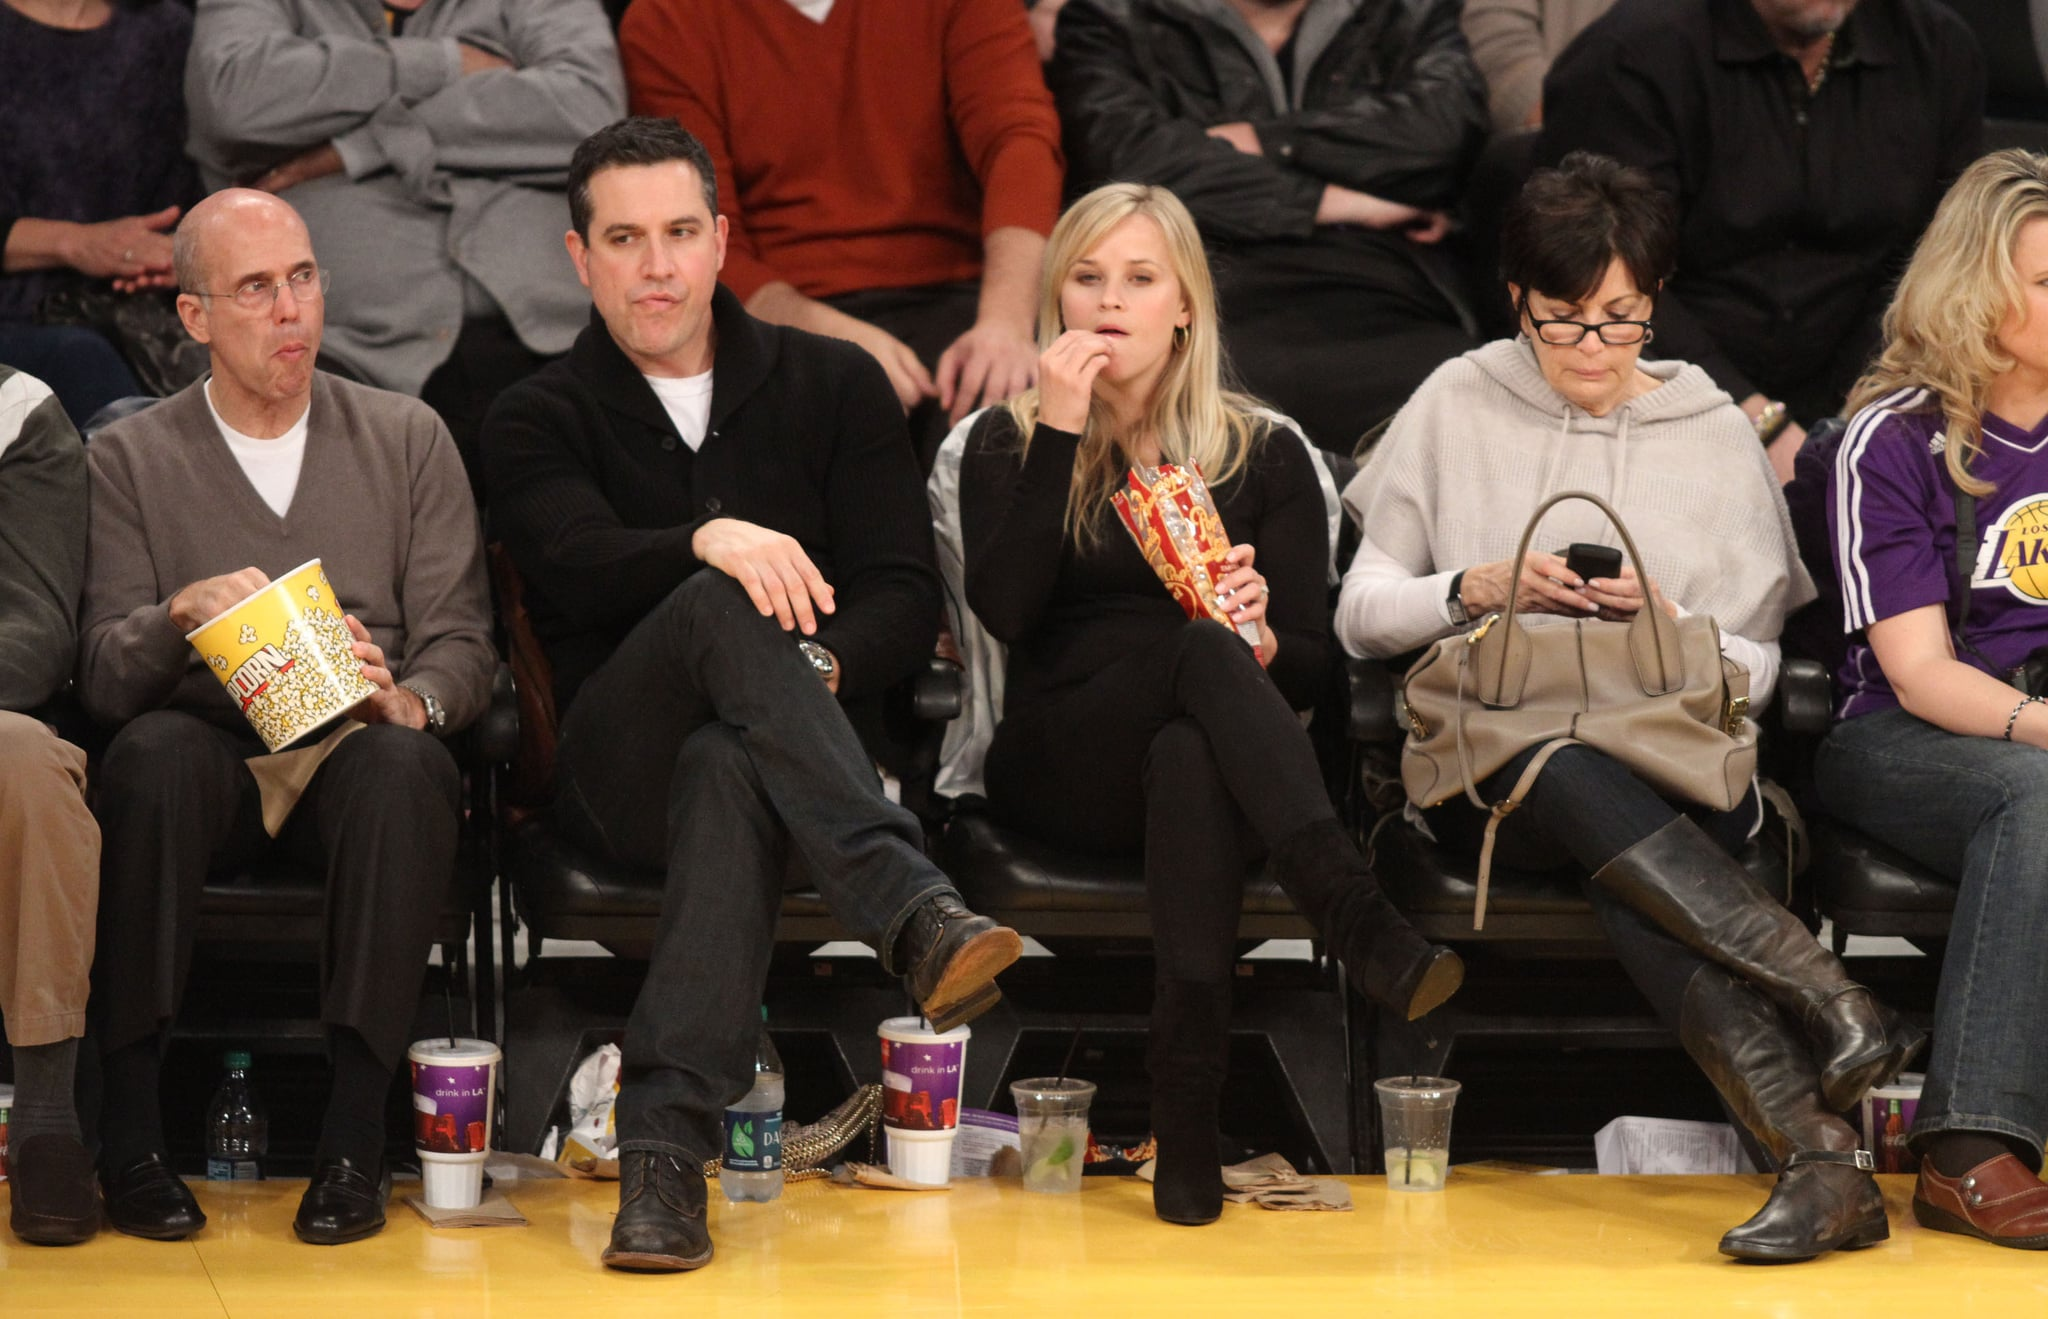 Reese Witherspoon and her husband, Jim Toth, went to the Lakers game.